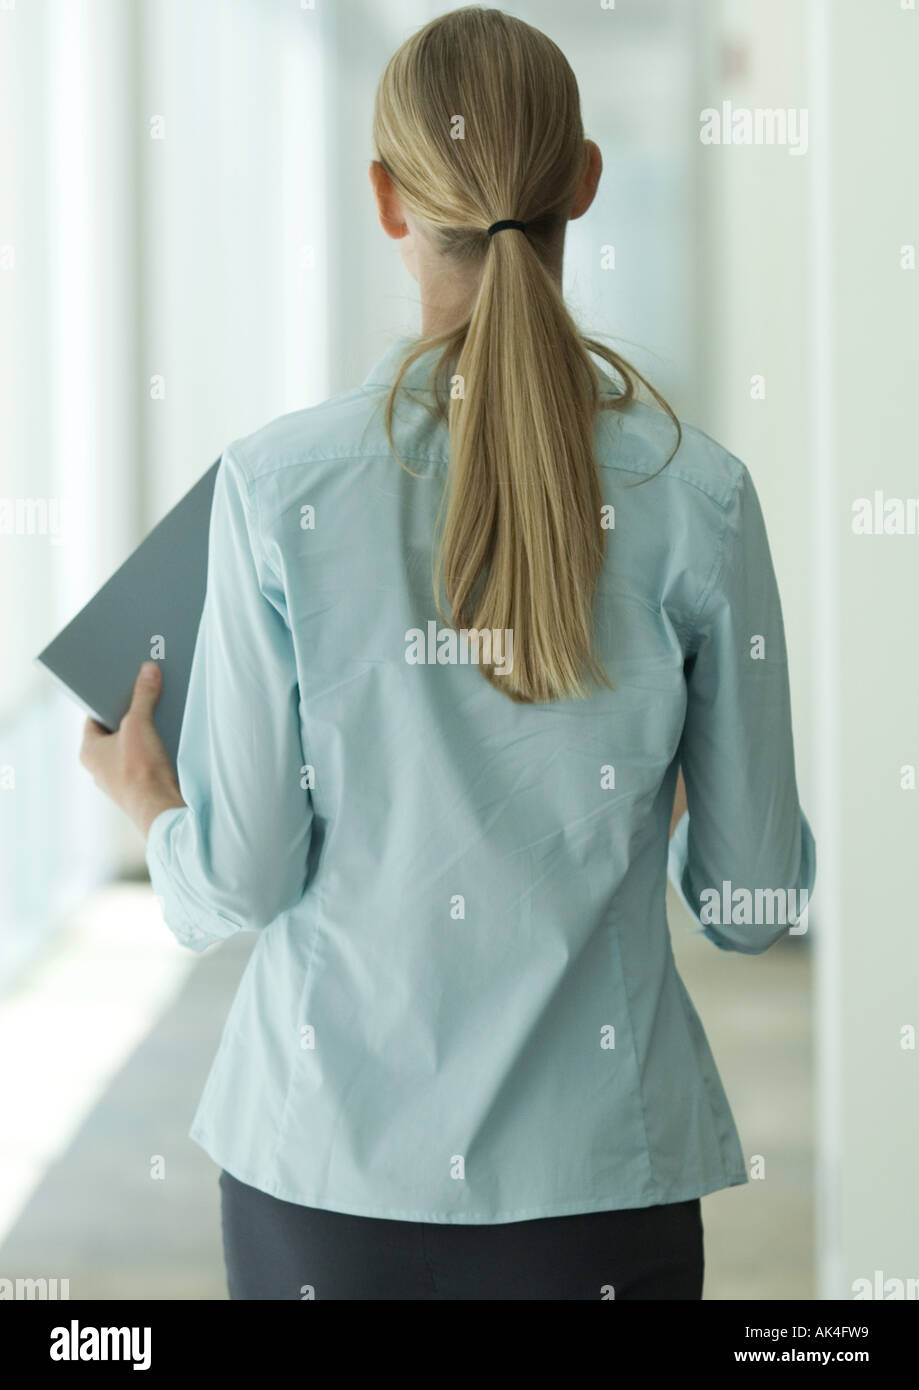 Female office worker walking through corridor, rear view - Stock Image